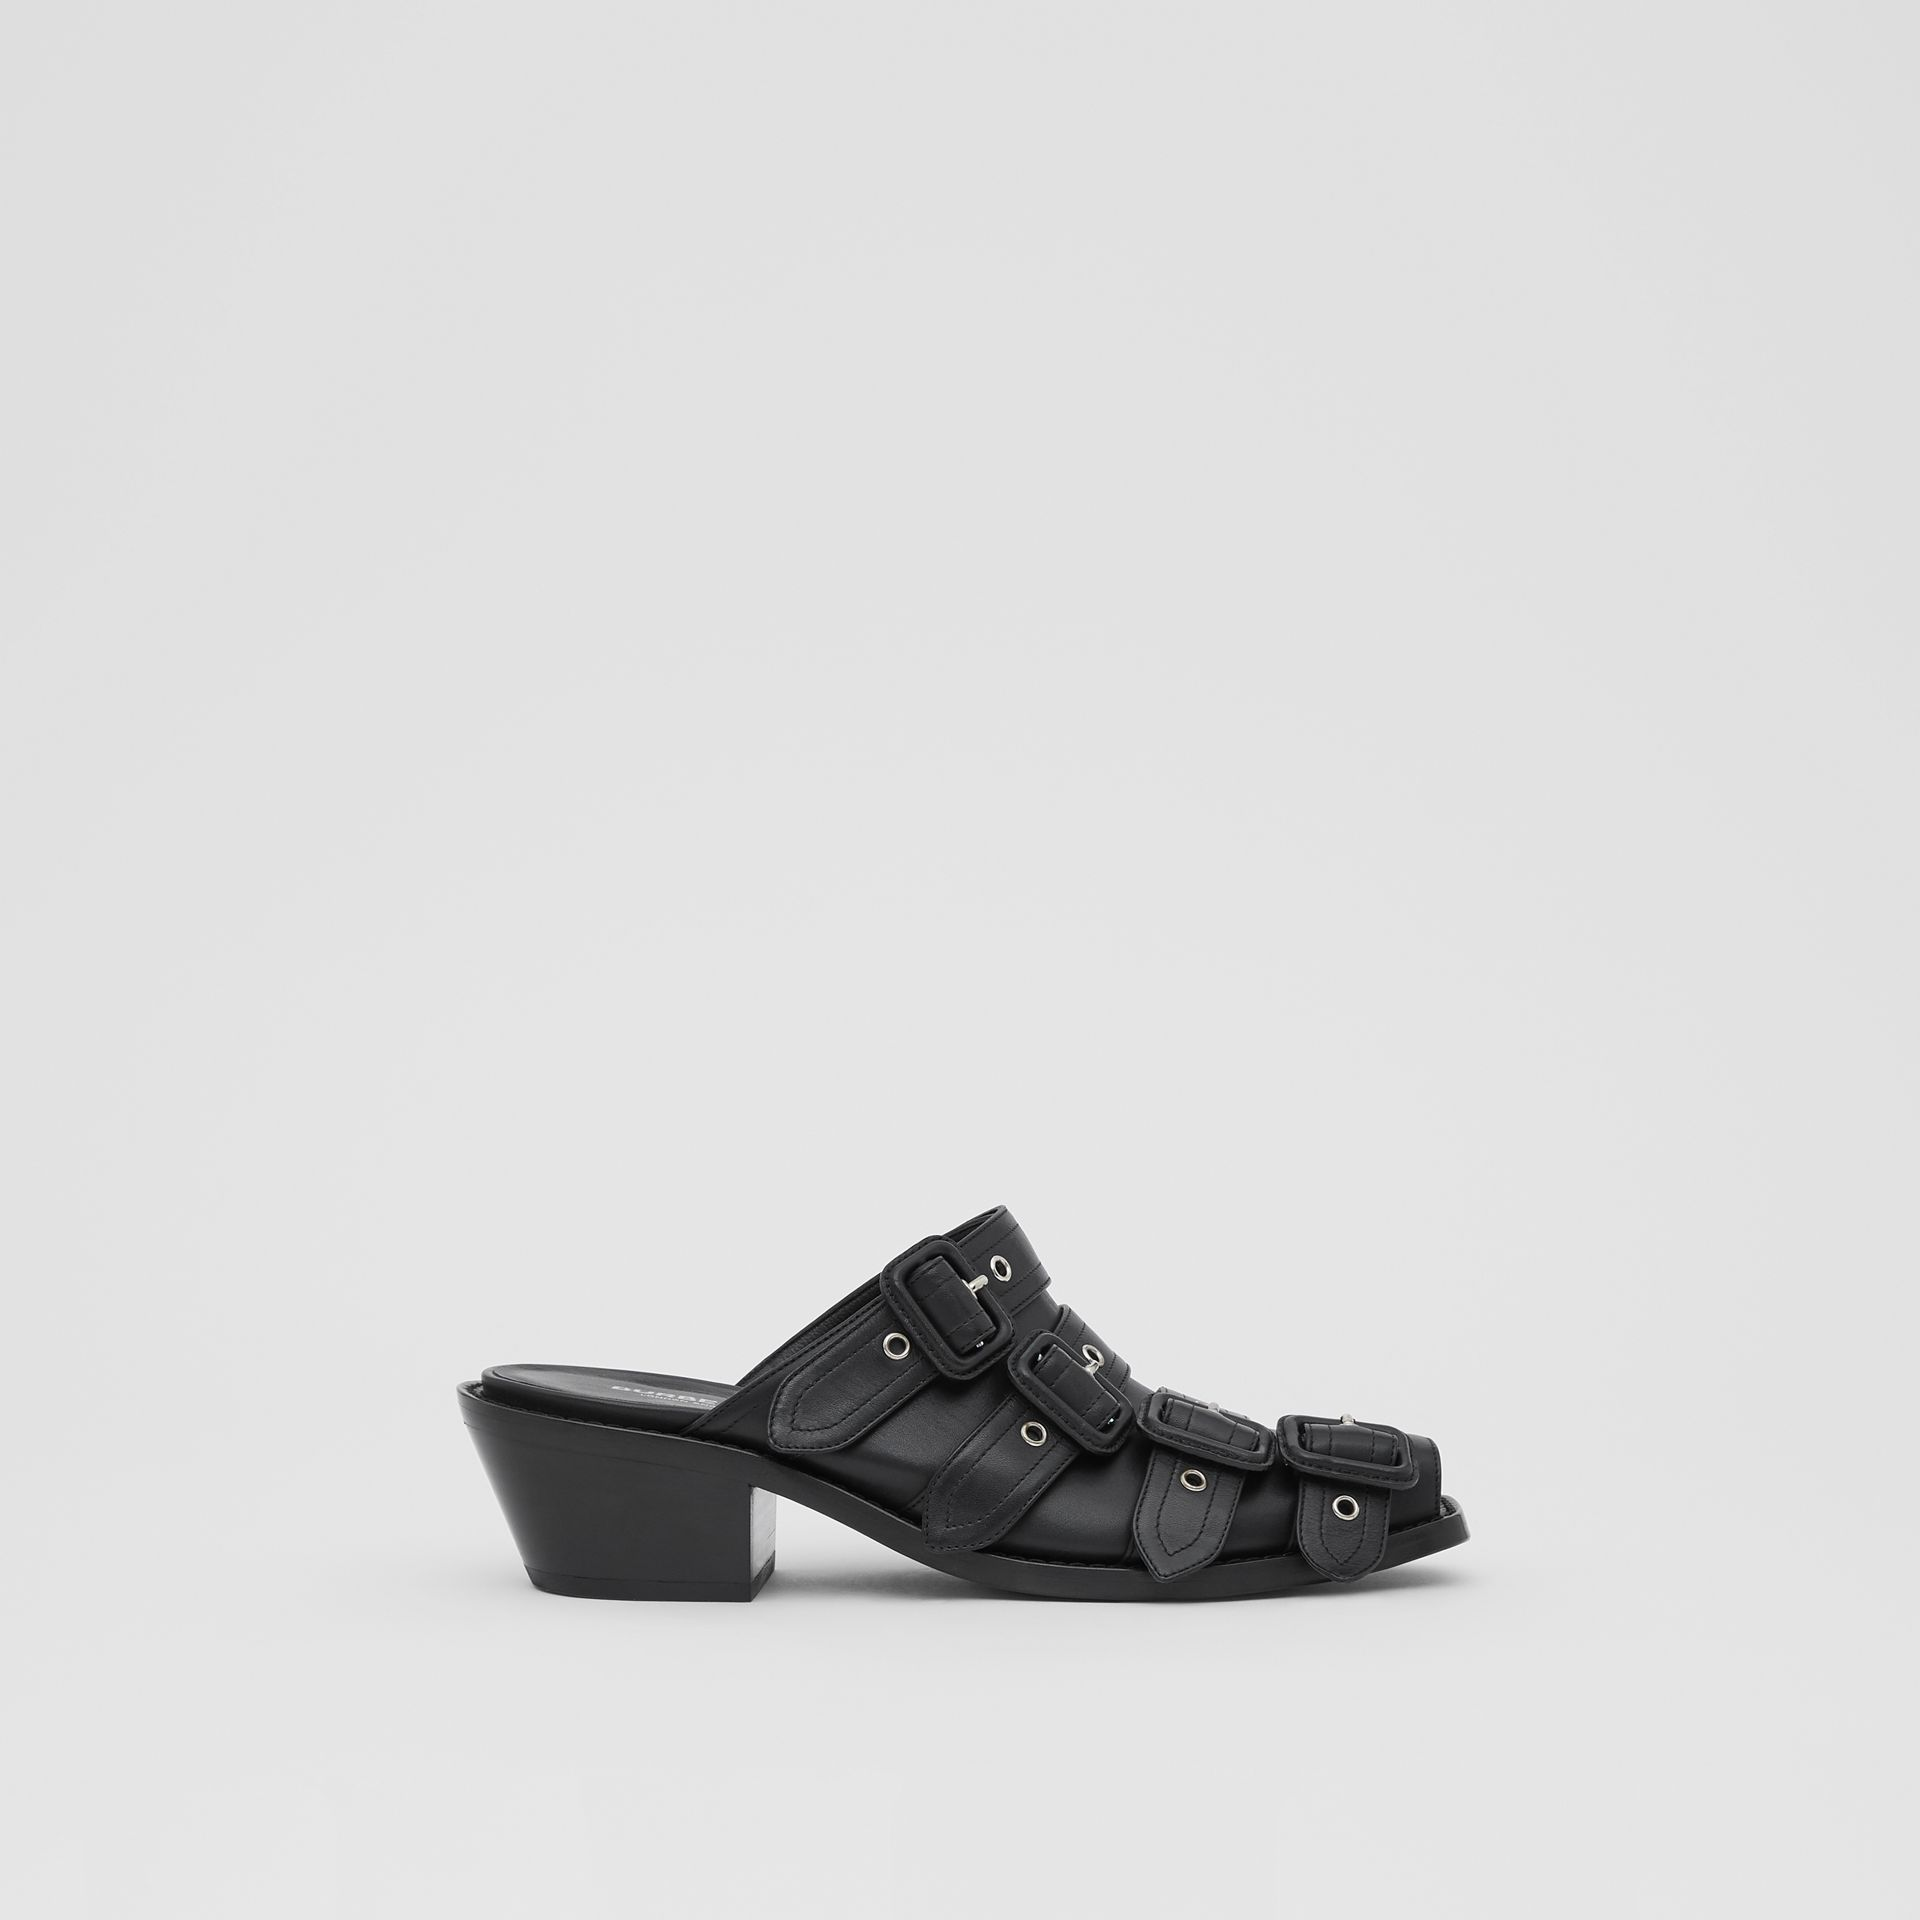 Buckled Leather Peep-toe Mules in Black - Women | Burberry - gallery image 4